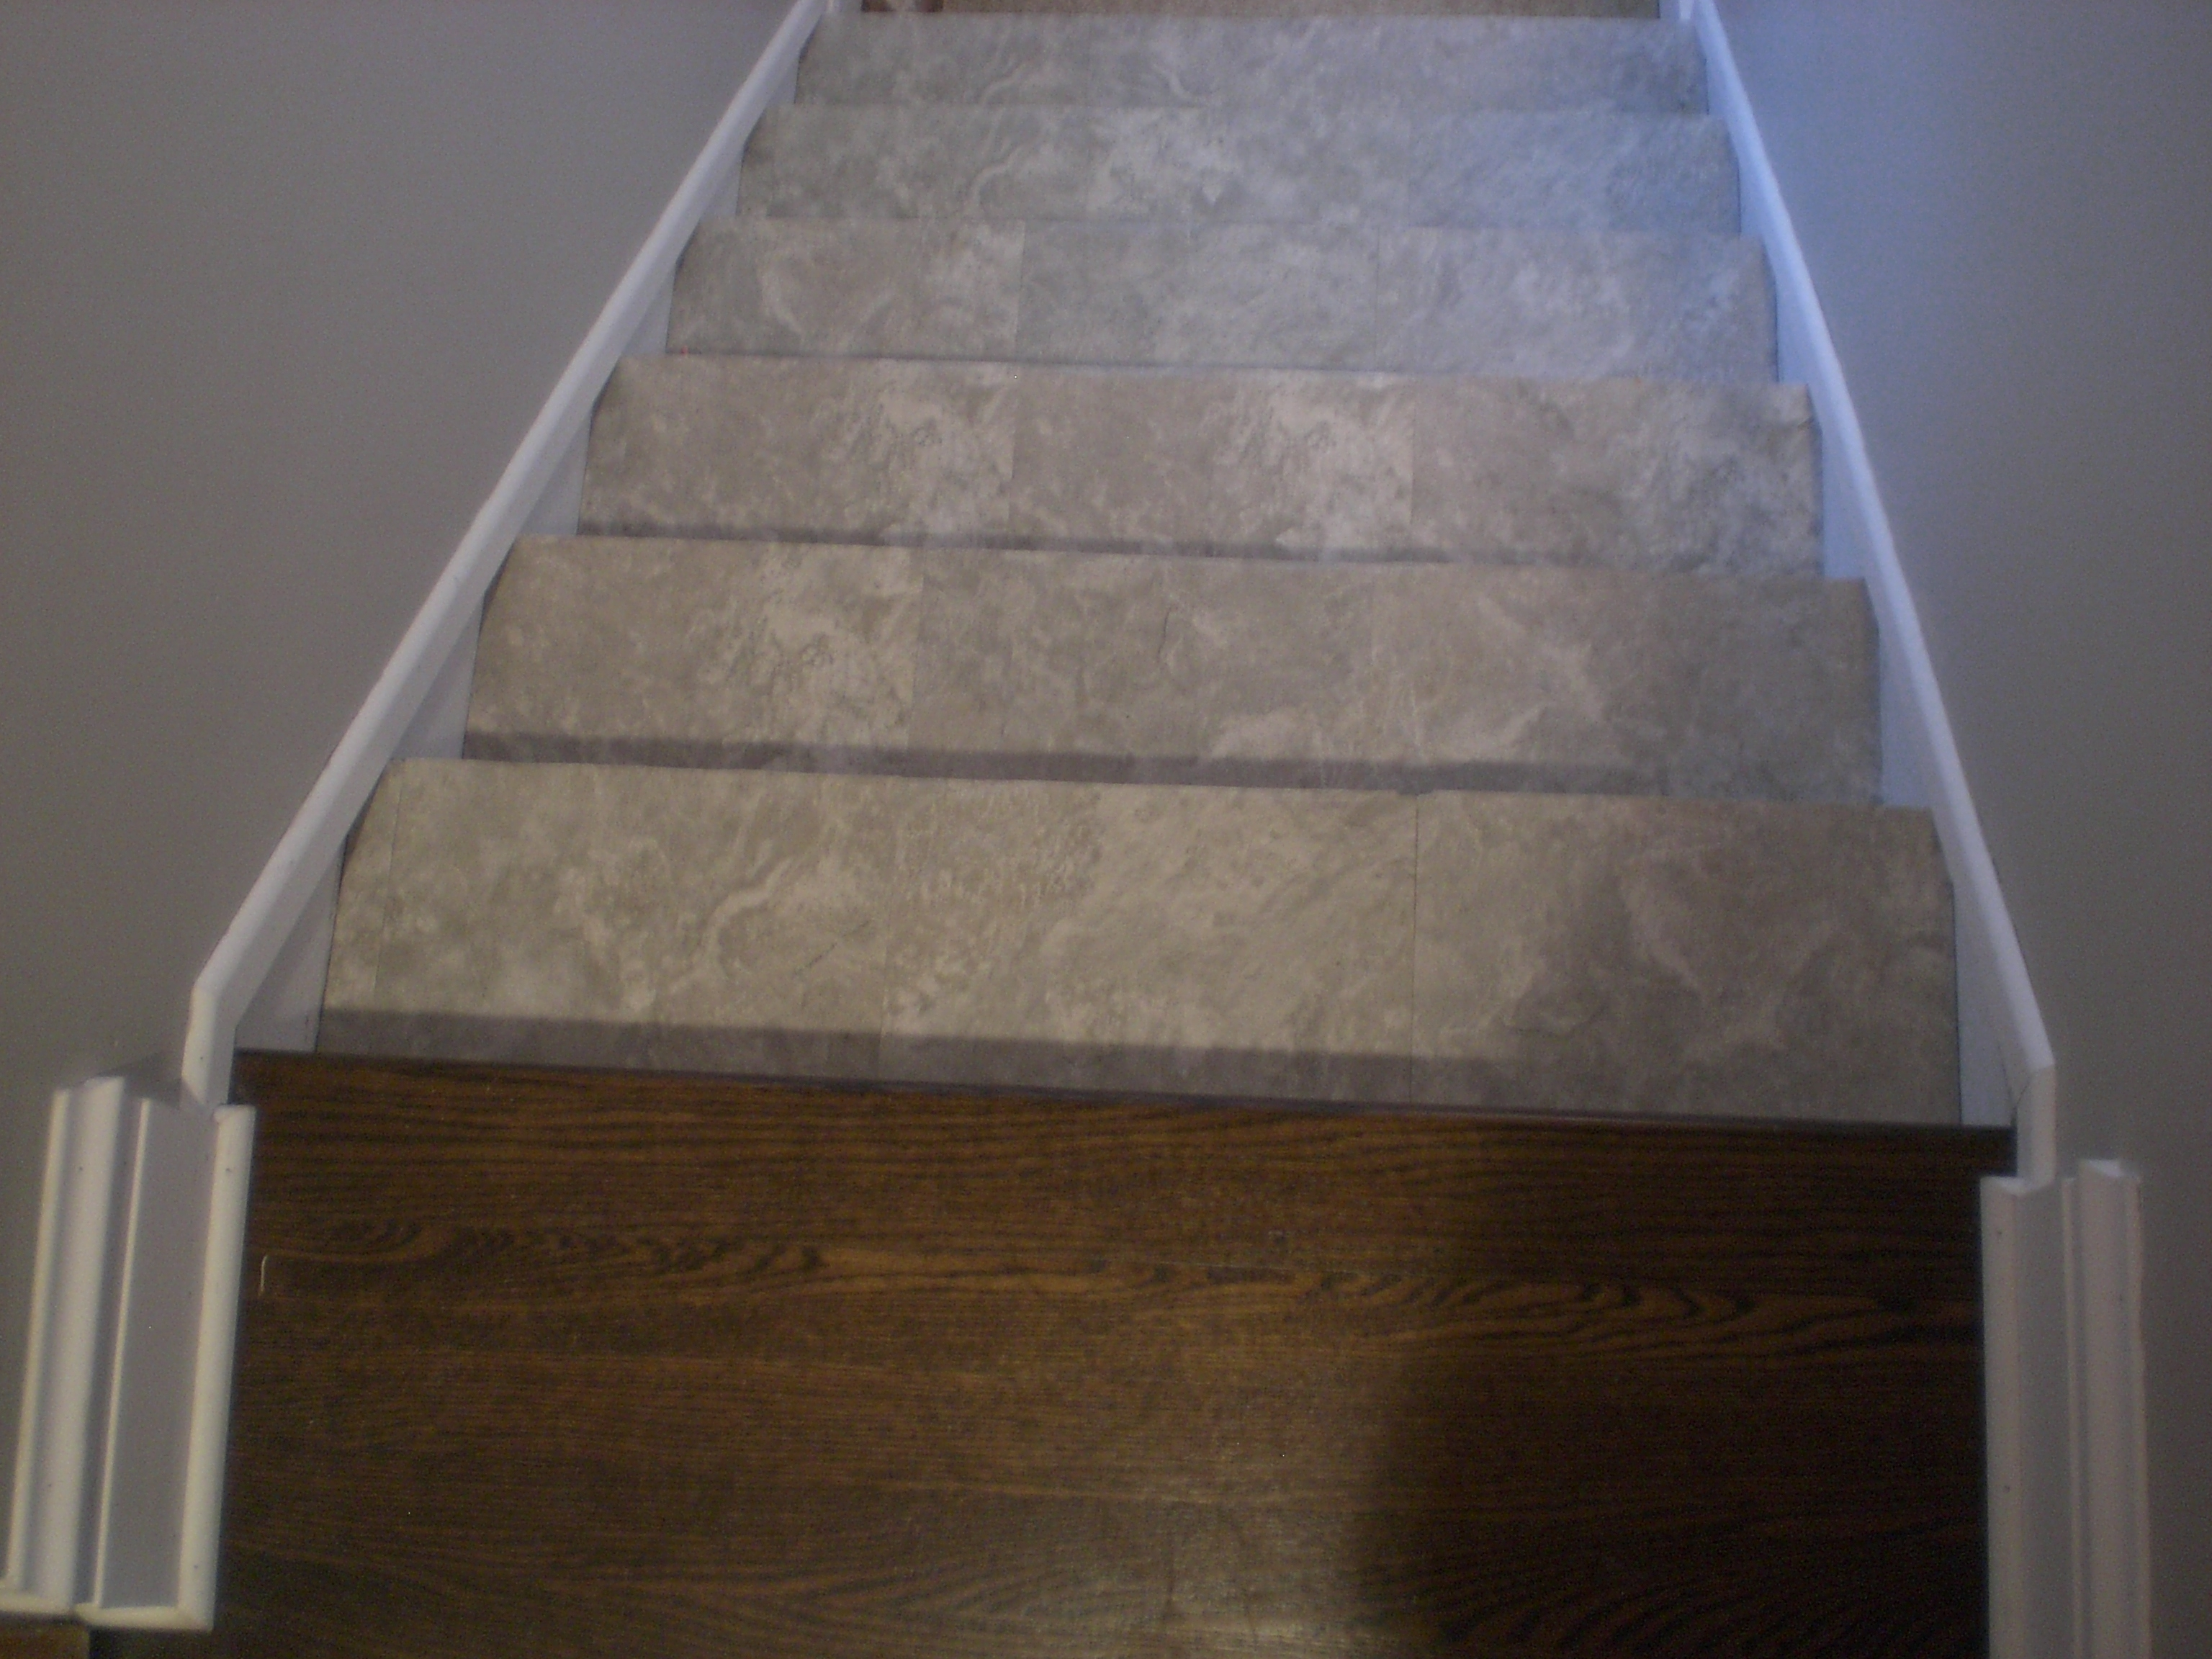 Peel And Stick Vinyl Plank Flooring On Stairs Floor Decoration With Regard To Stick On Carpet For Stairs (View 19 of 20)